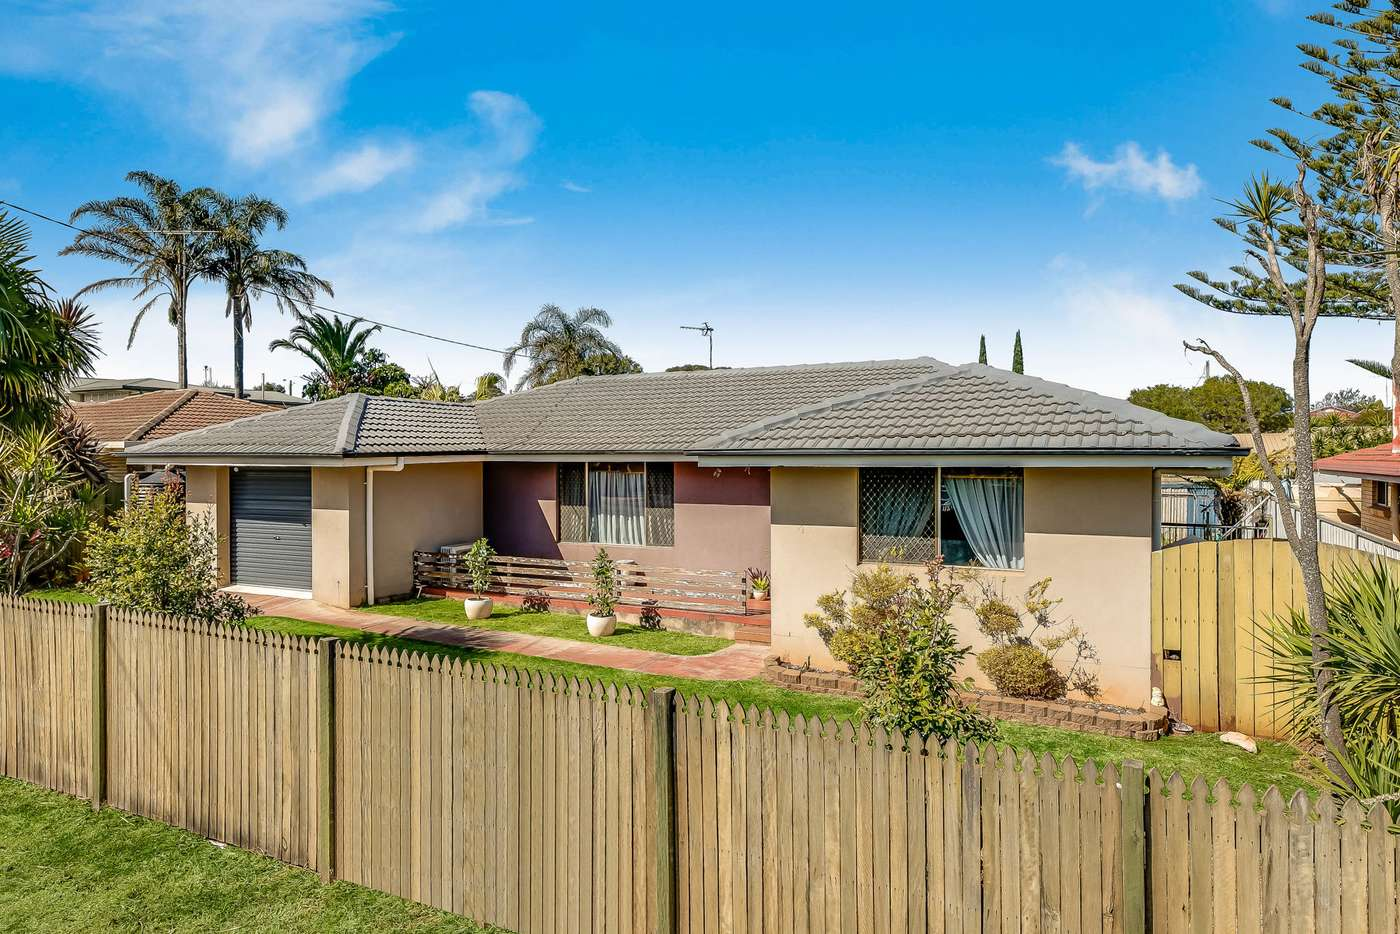 Main view of Homely house listing, 512 Alderley Street, Harristown QLD 4350